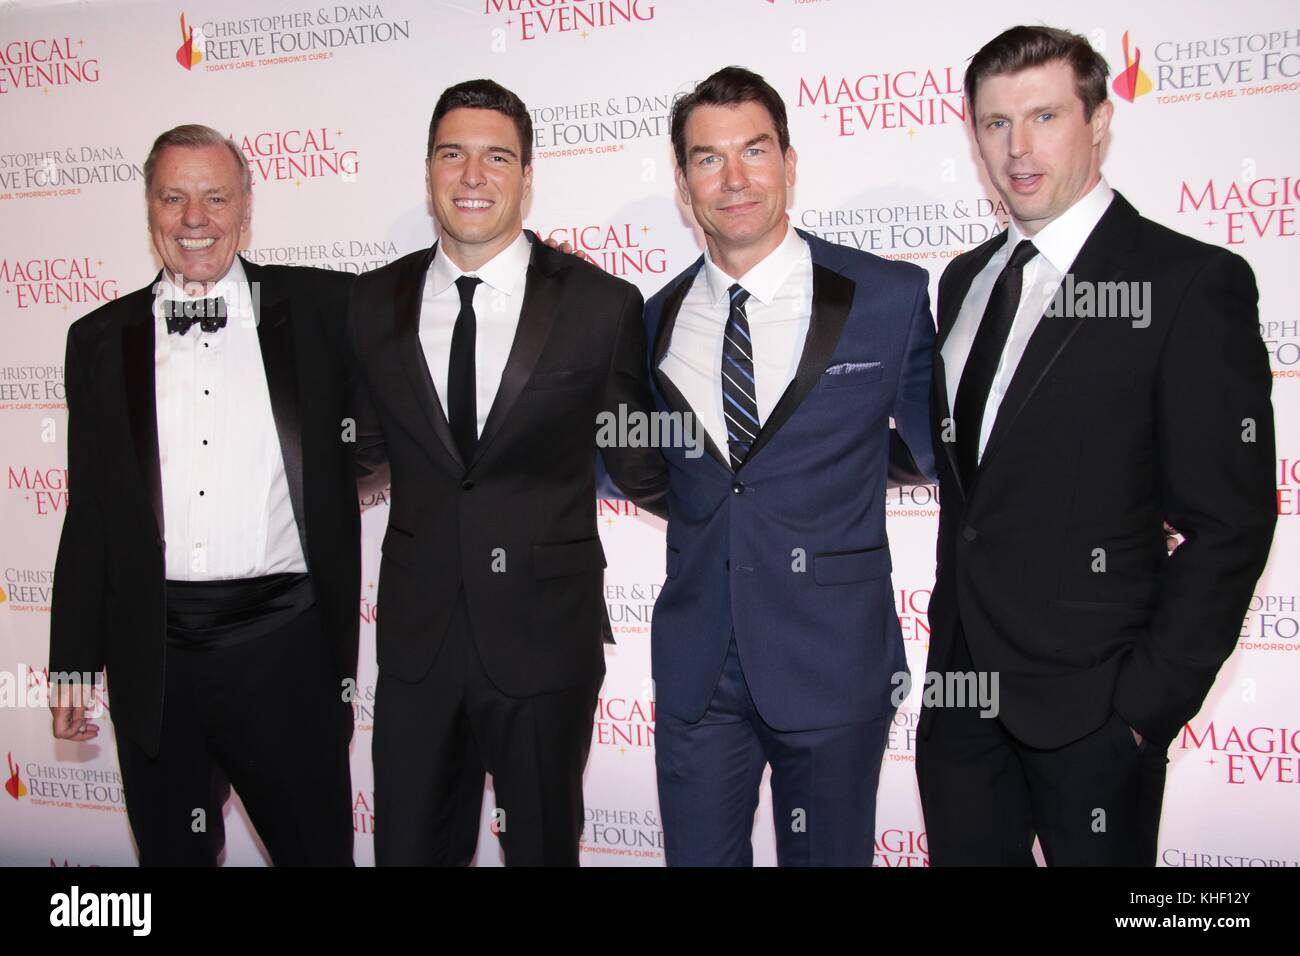 New York, NY, USA. 16th Nov, 2017. Peter Wilderotter, William Reeve, Jerry OConnell and Matthew Reeve at The Christopher - Stock Image